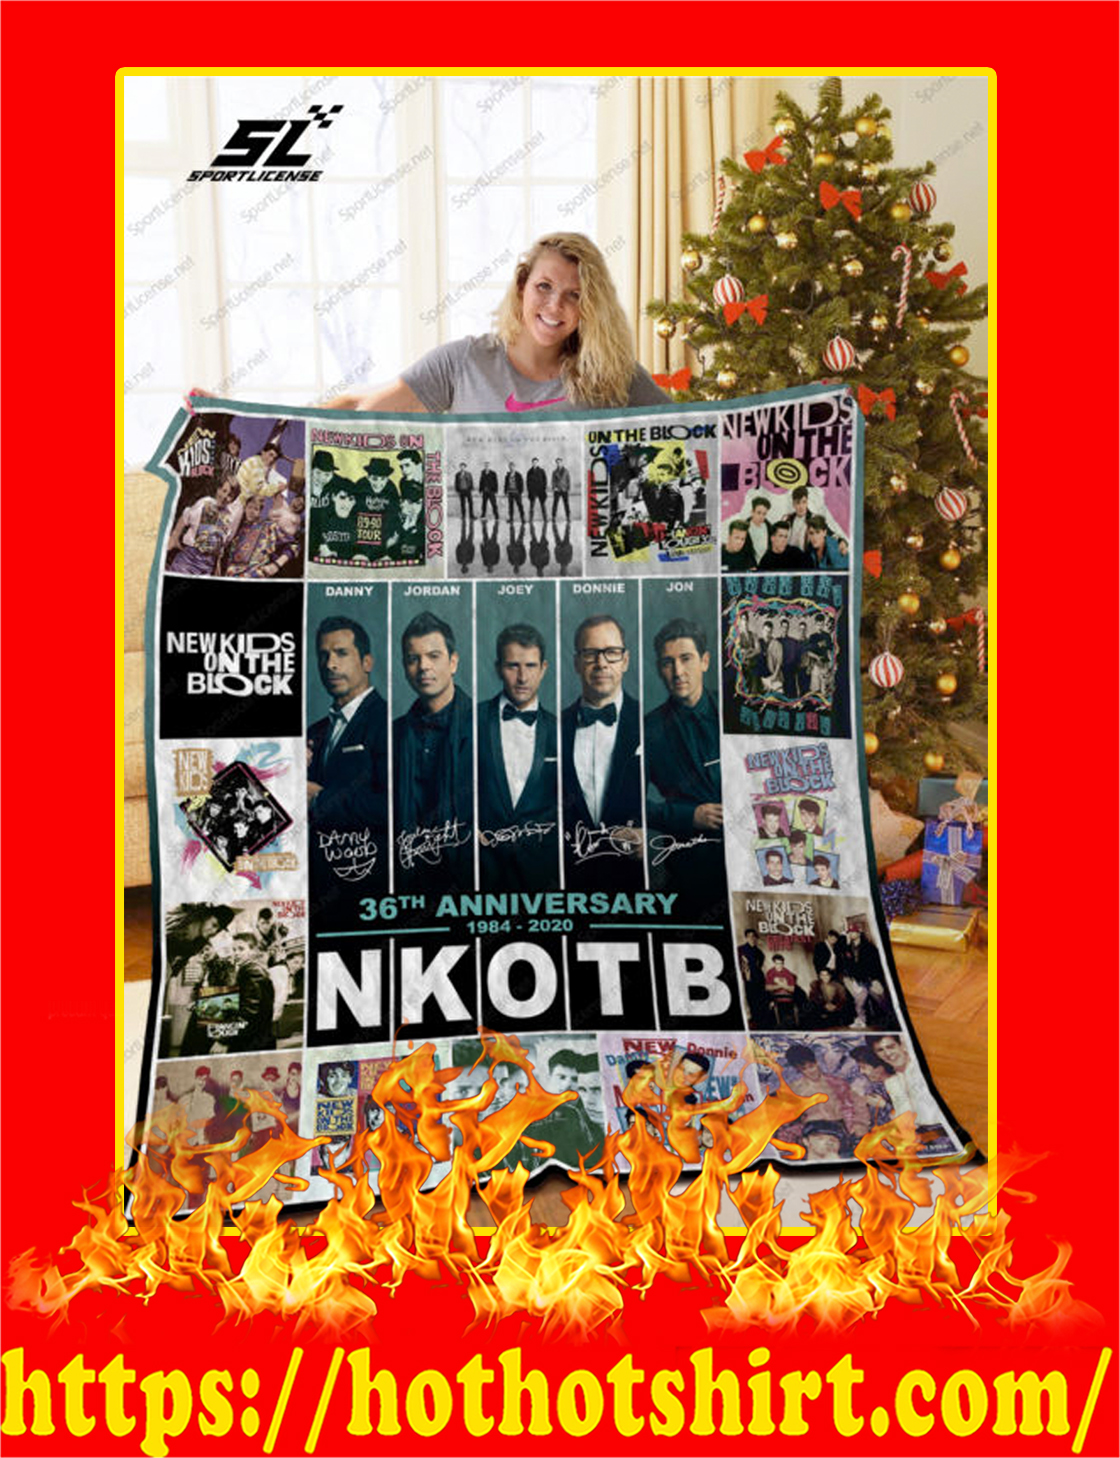 NKOTB 36th Anniversary 1984 2020 Quilt Blanket - twin